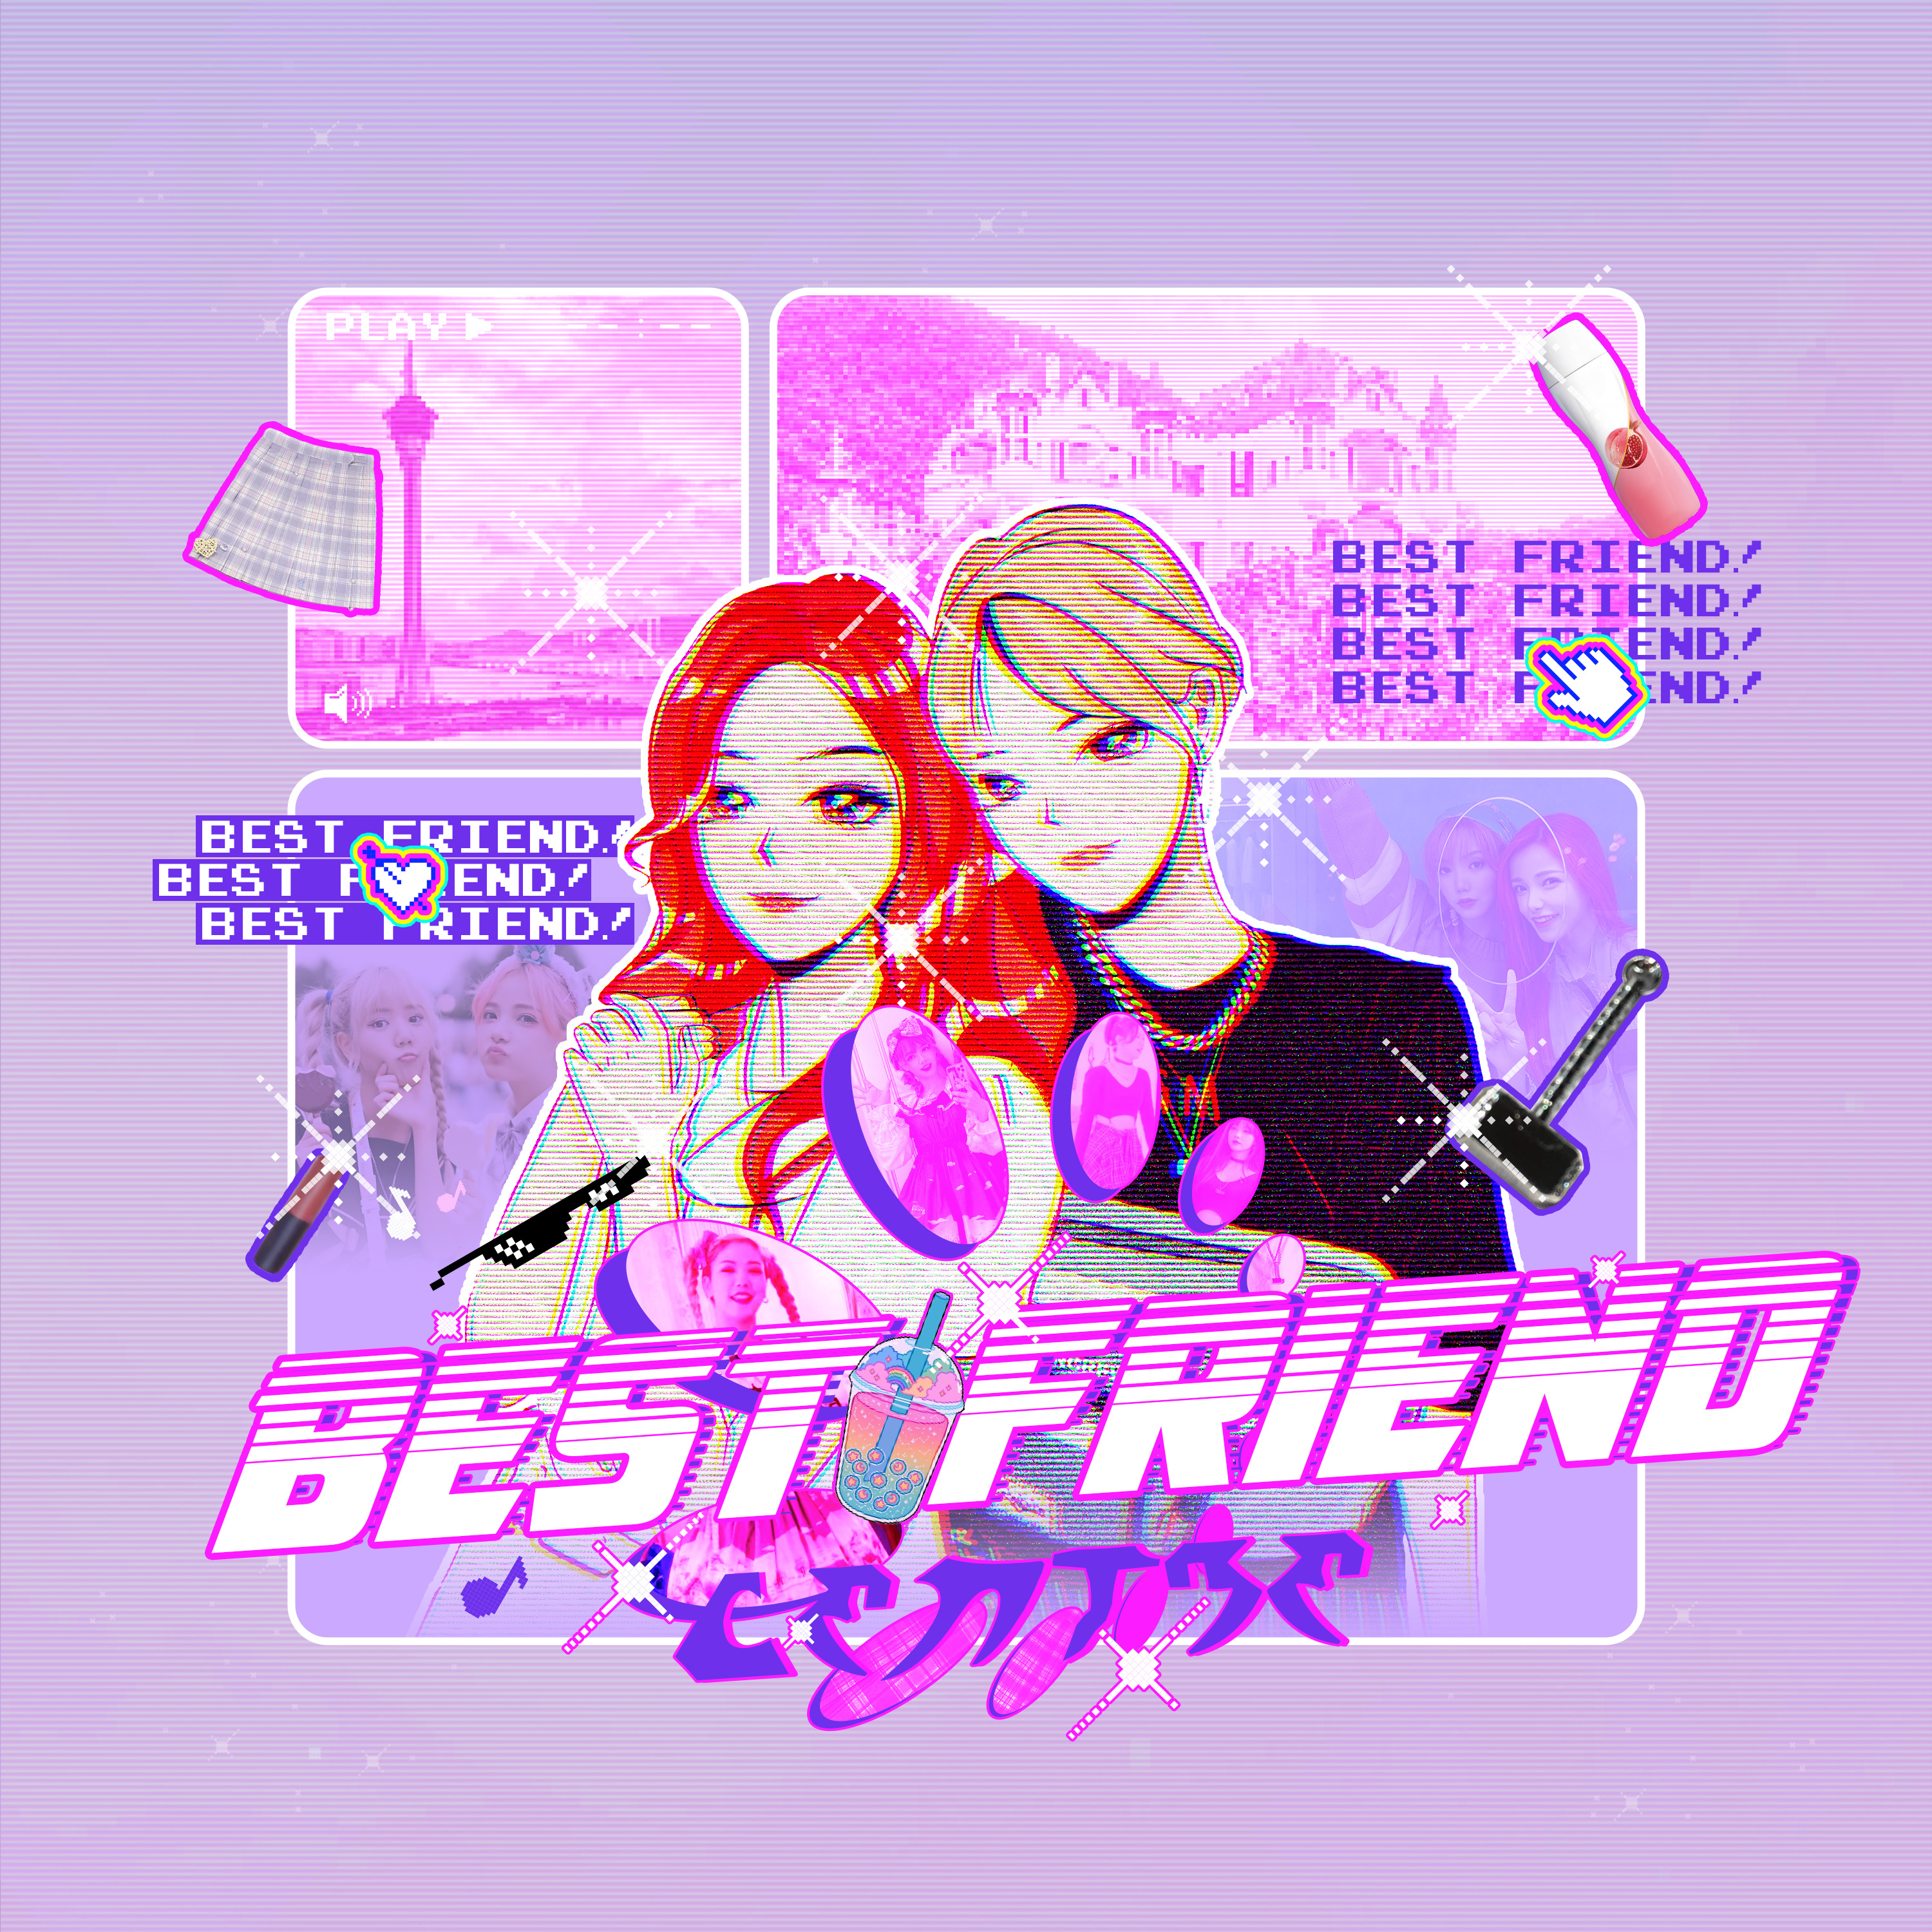 钟欣cent3e《Best Friend》_單曲封面